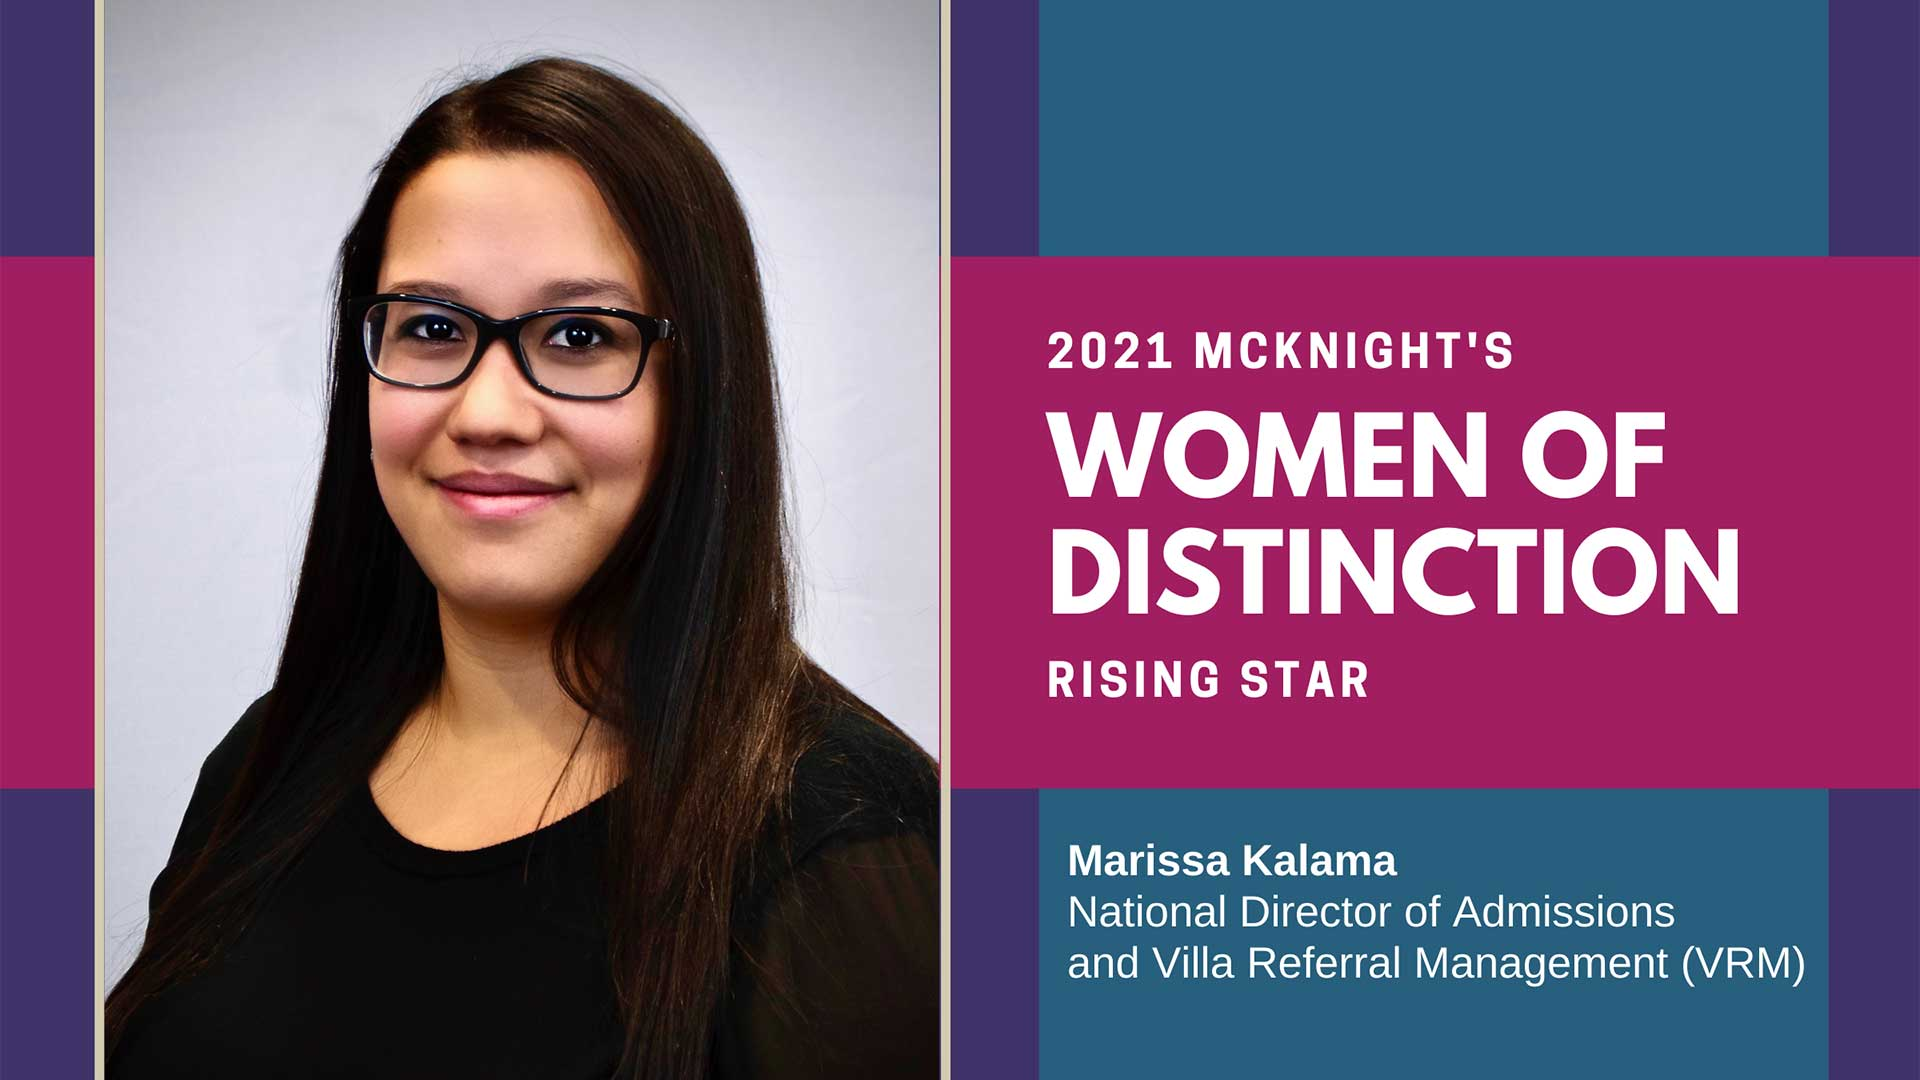 Marissa-Kalama-as-McKnights-Women-of-Distinction-Rising-Star